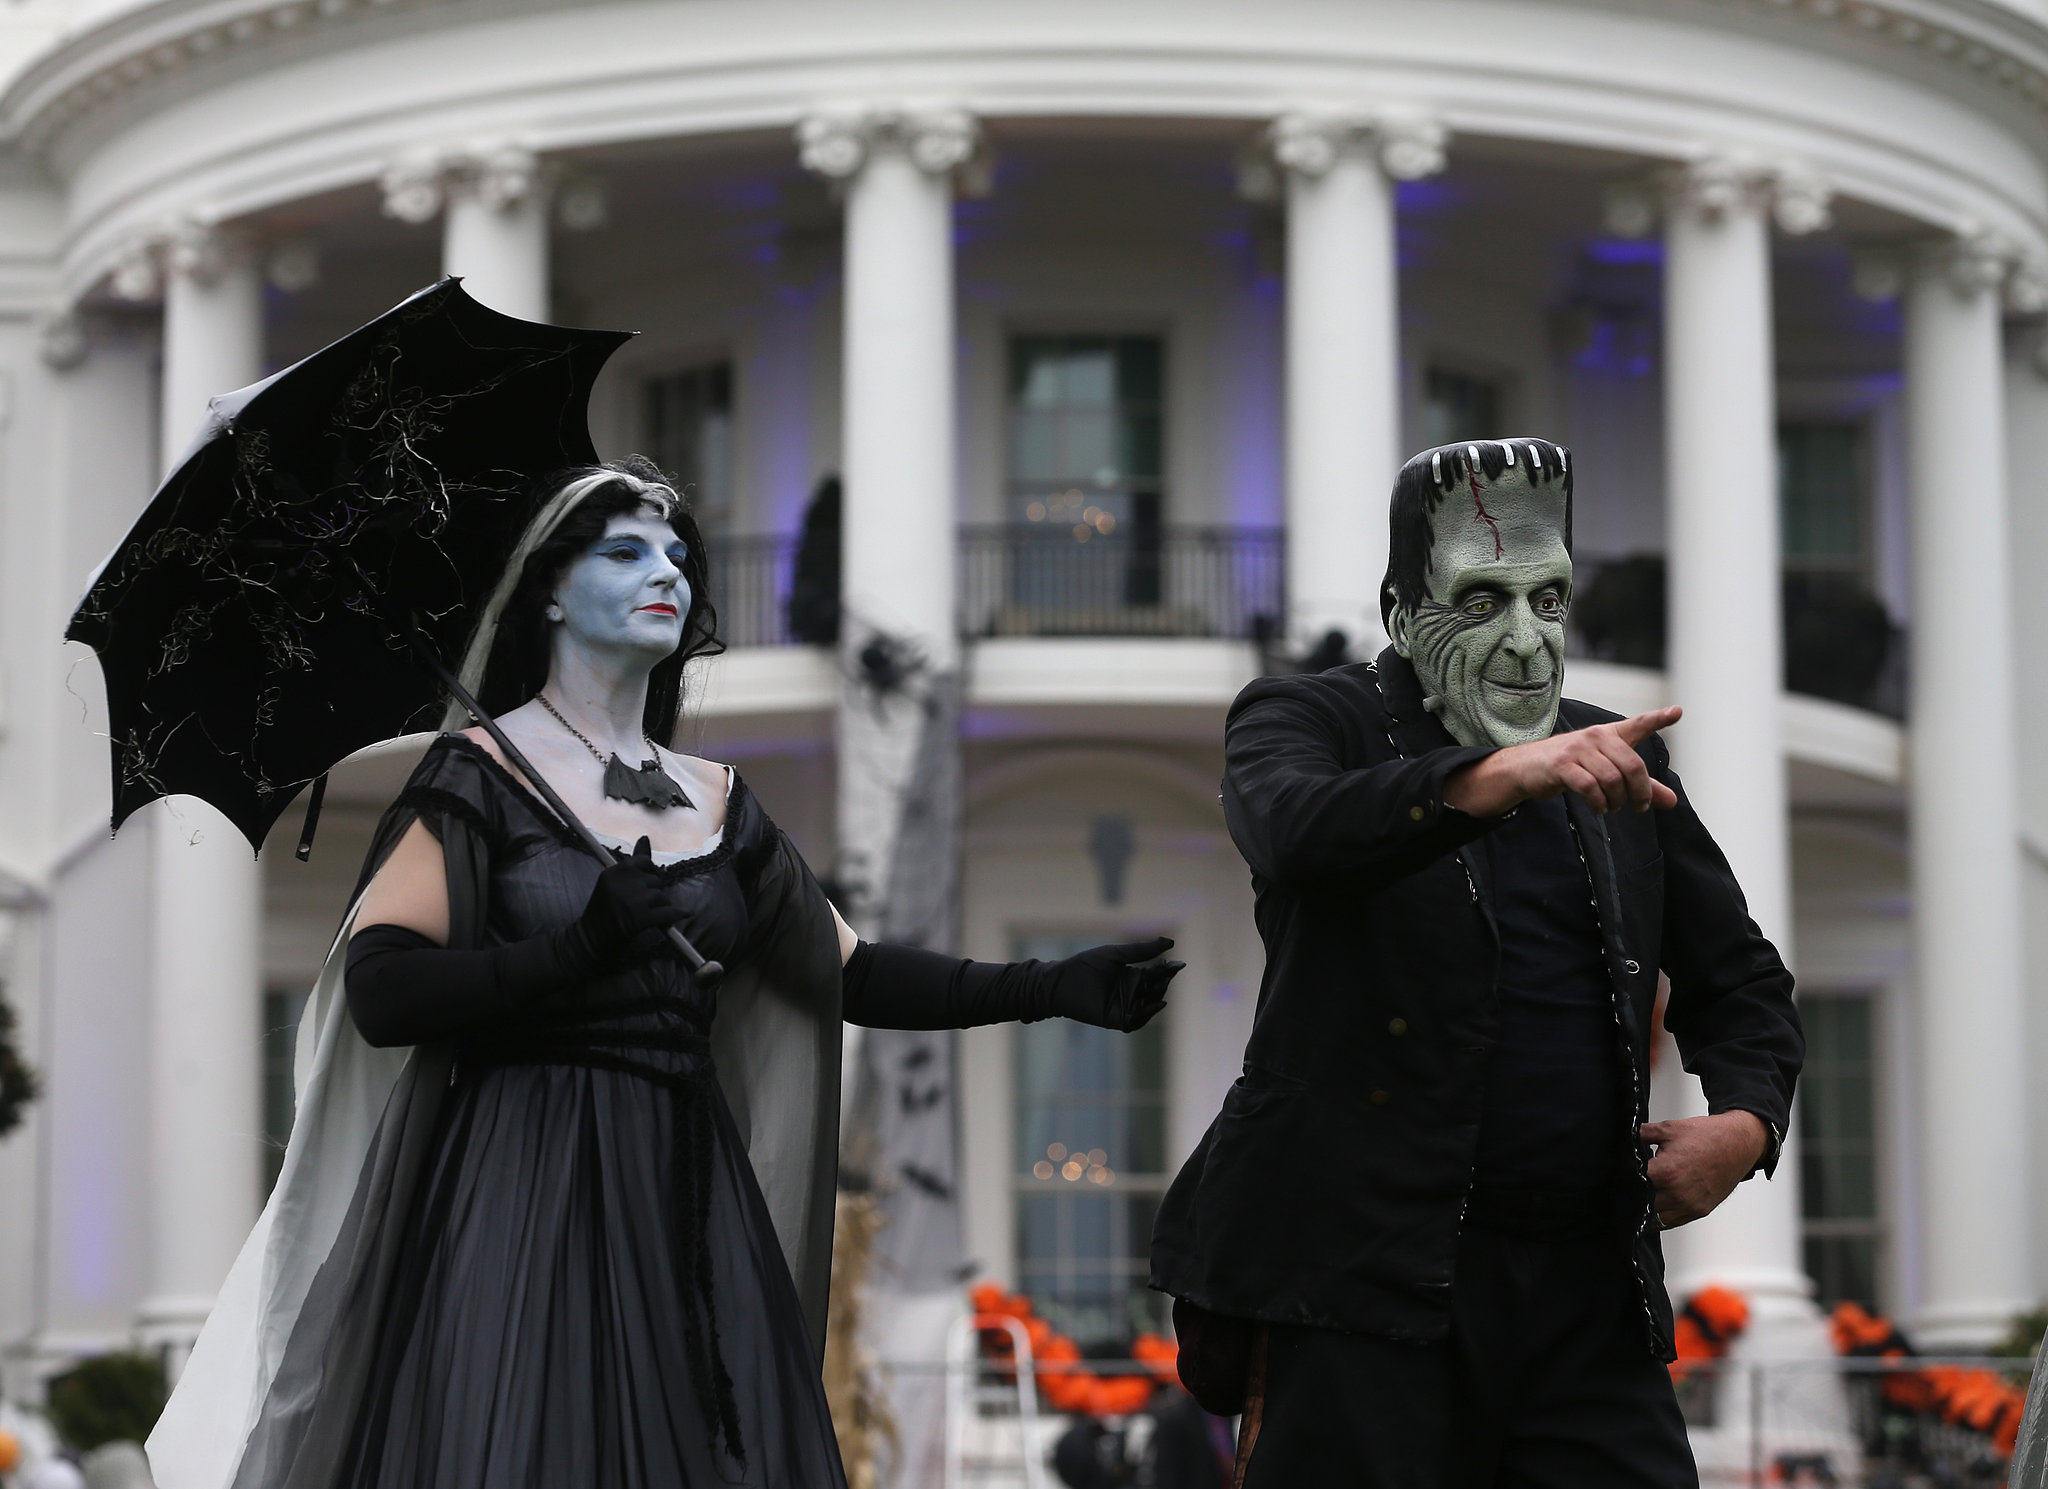 The White House lawn was taken over by people dressed as Frankenstein and his bride.